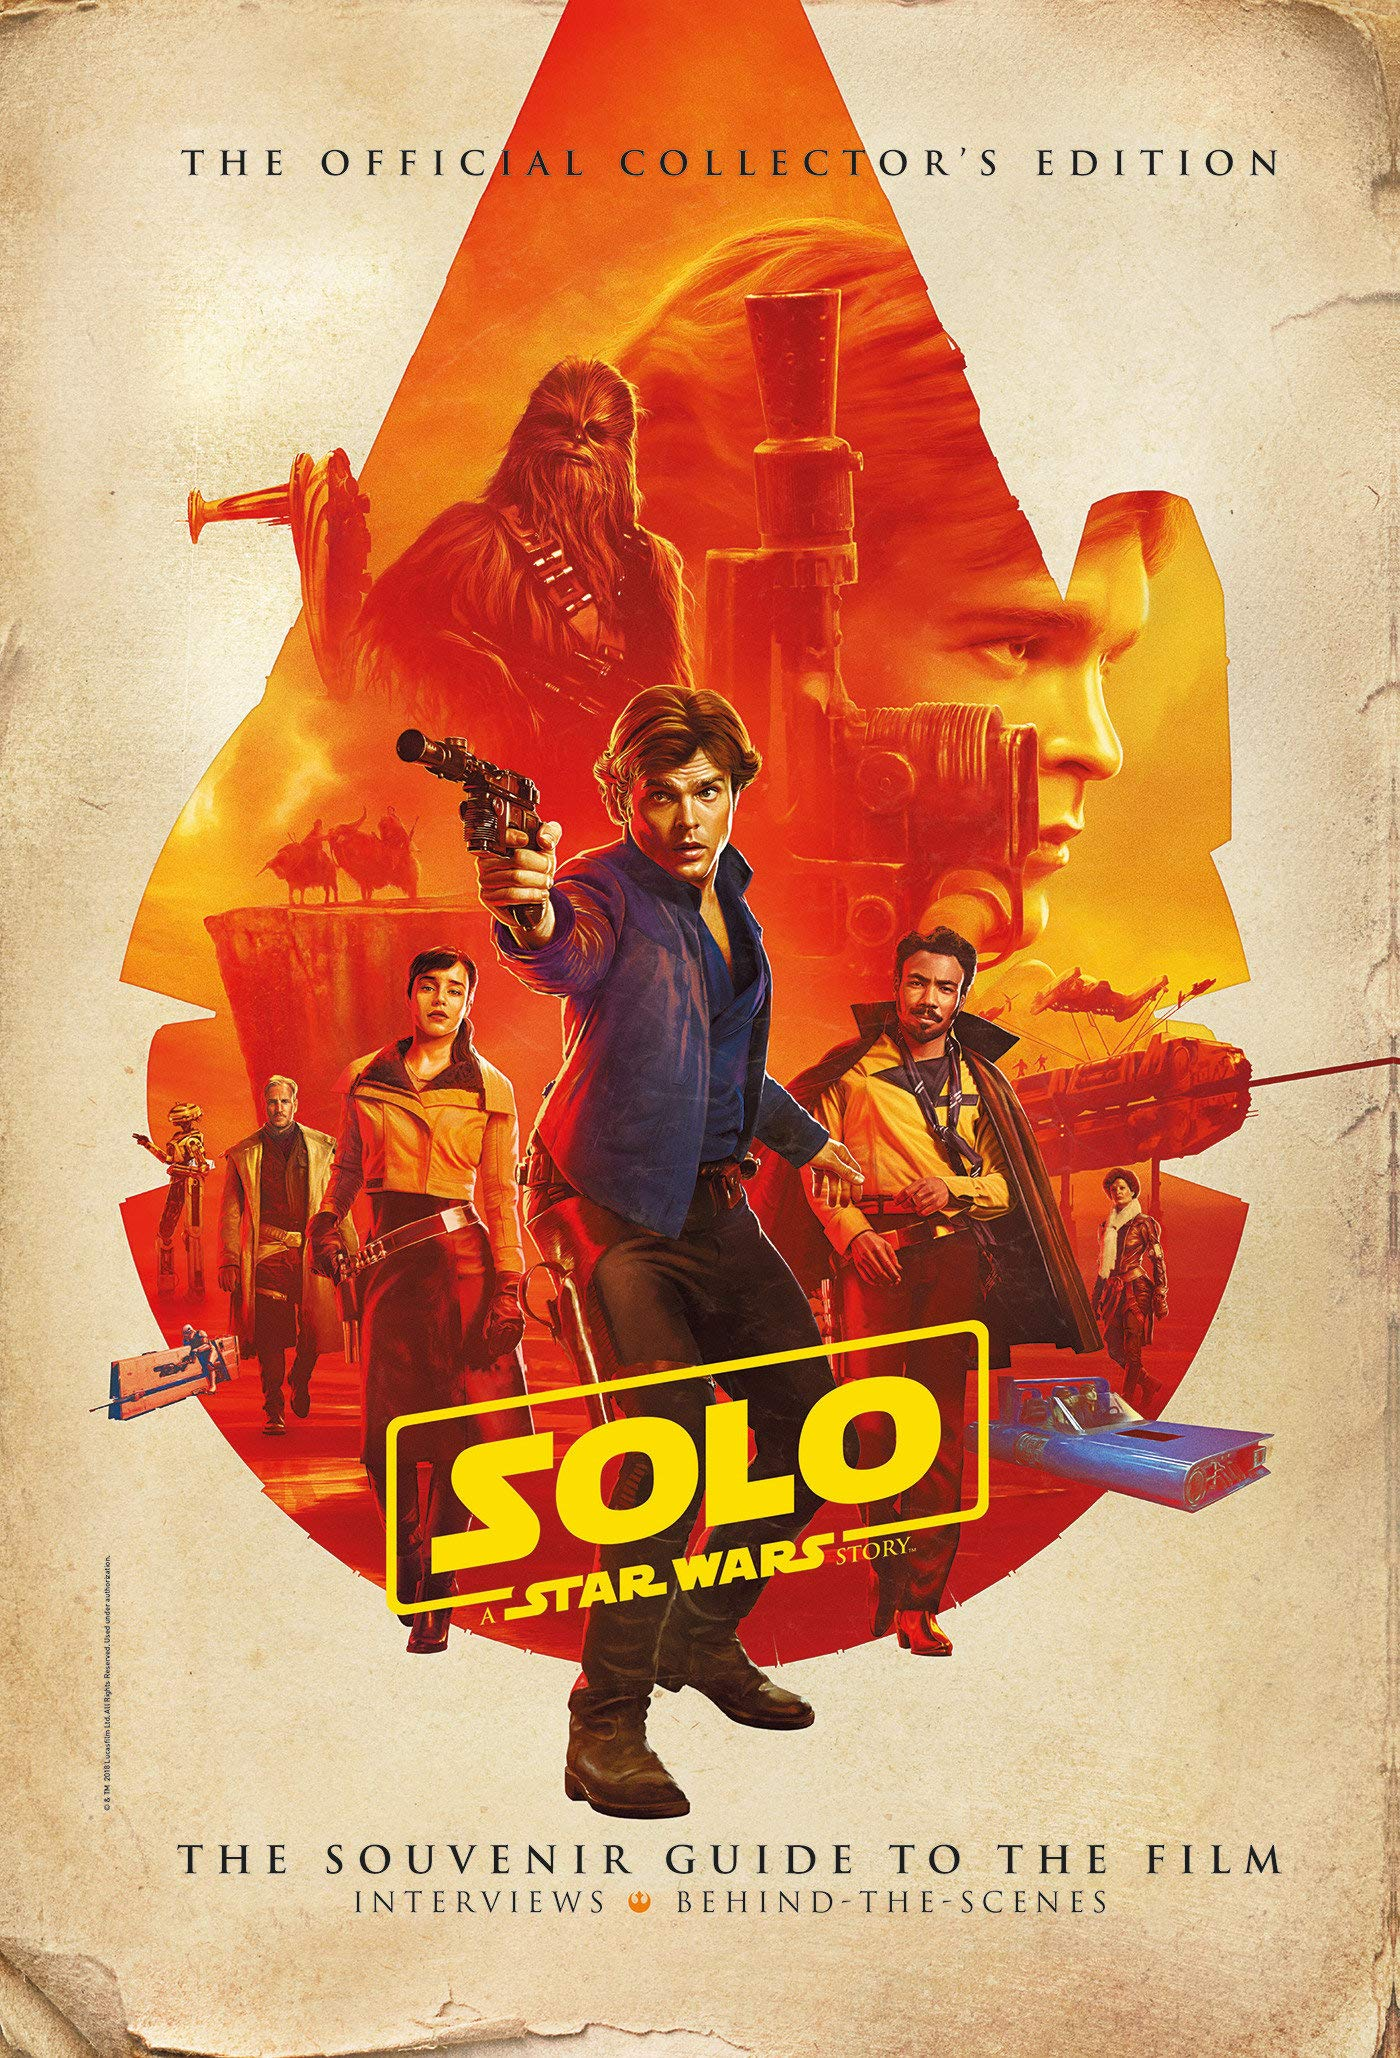 Solo: A Star Wars Story - The Official Collector's Edition (Book)